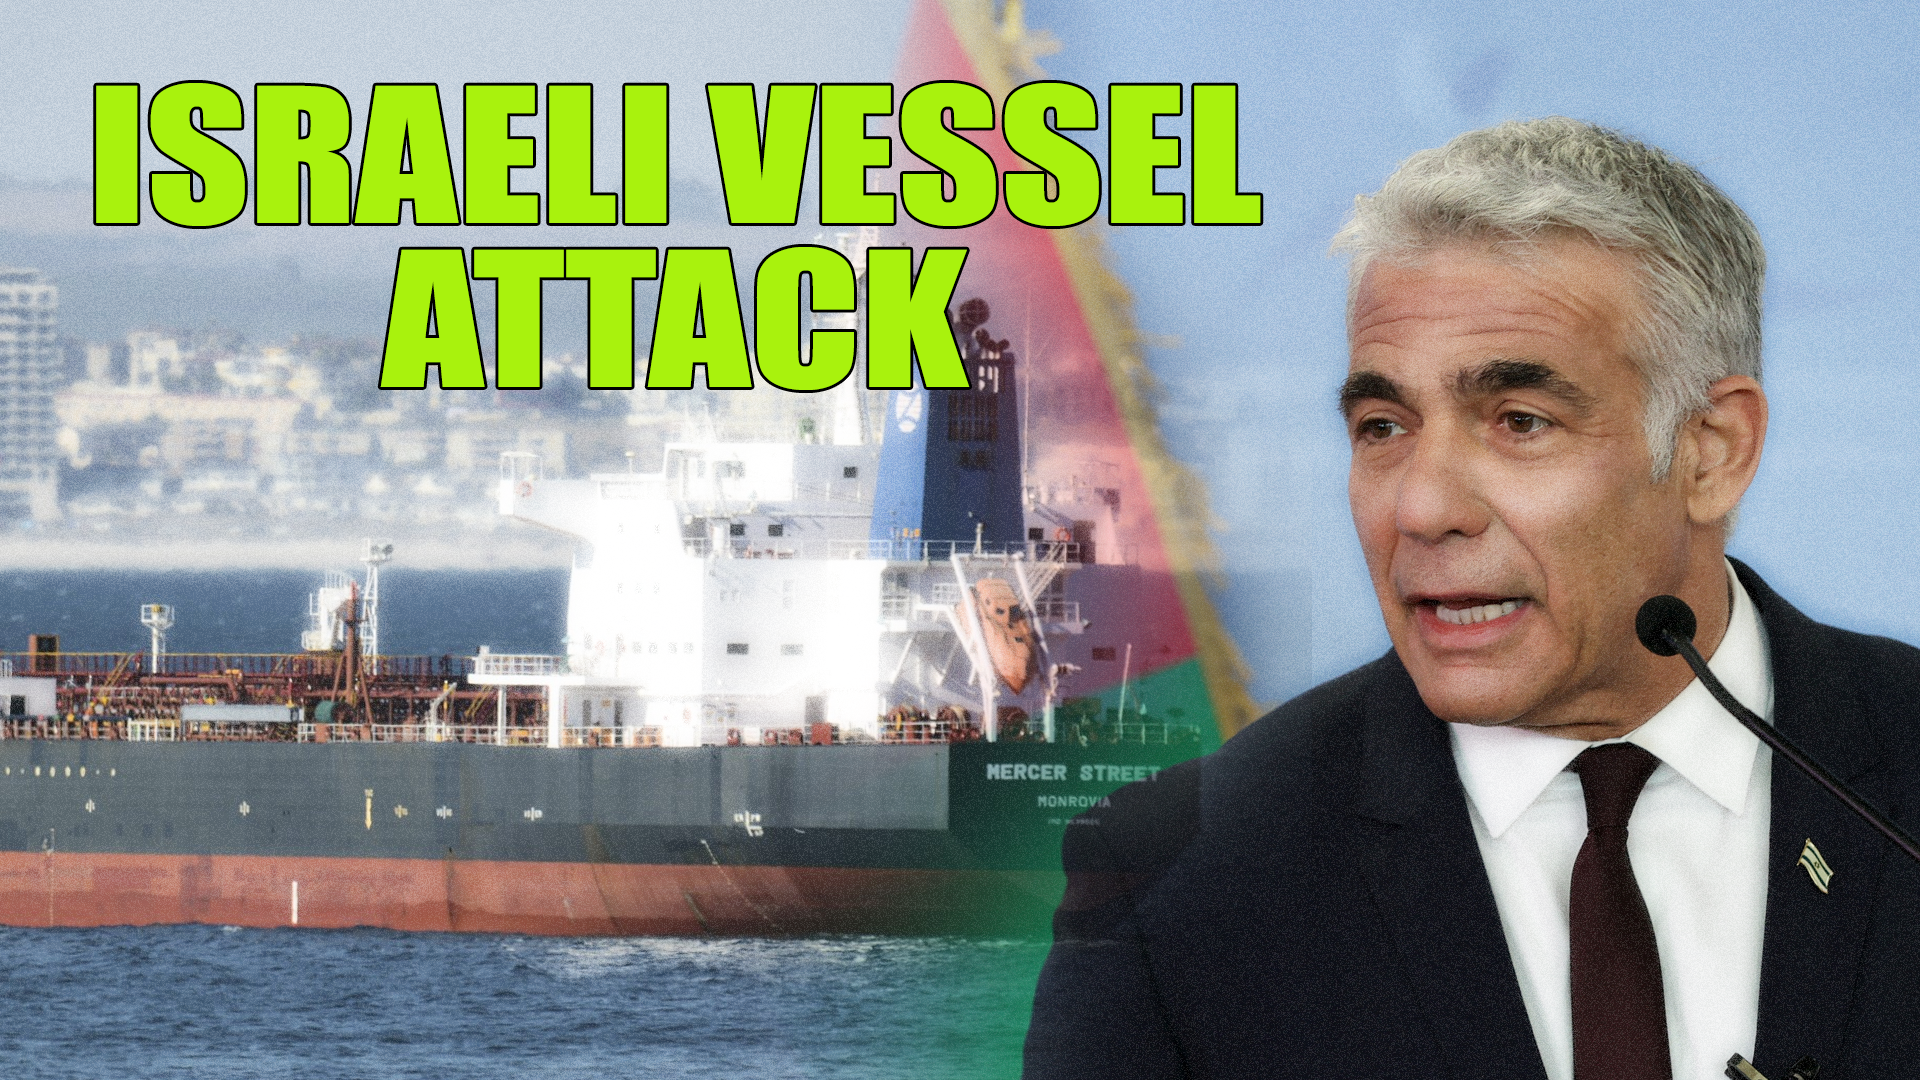 Israeli vessel attack; unfounded accusations against Iran